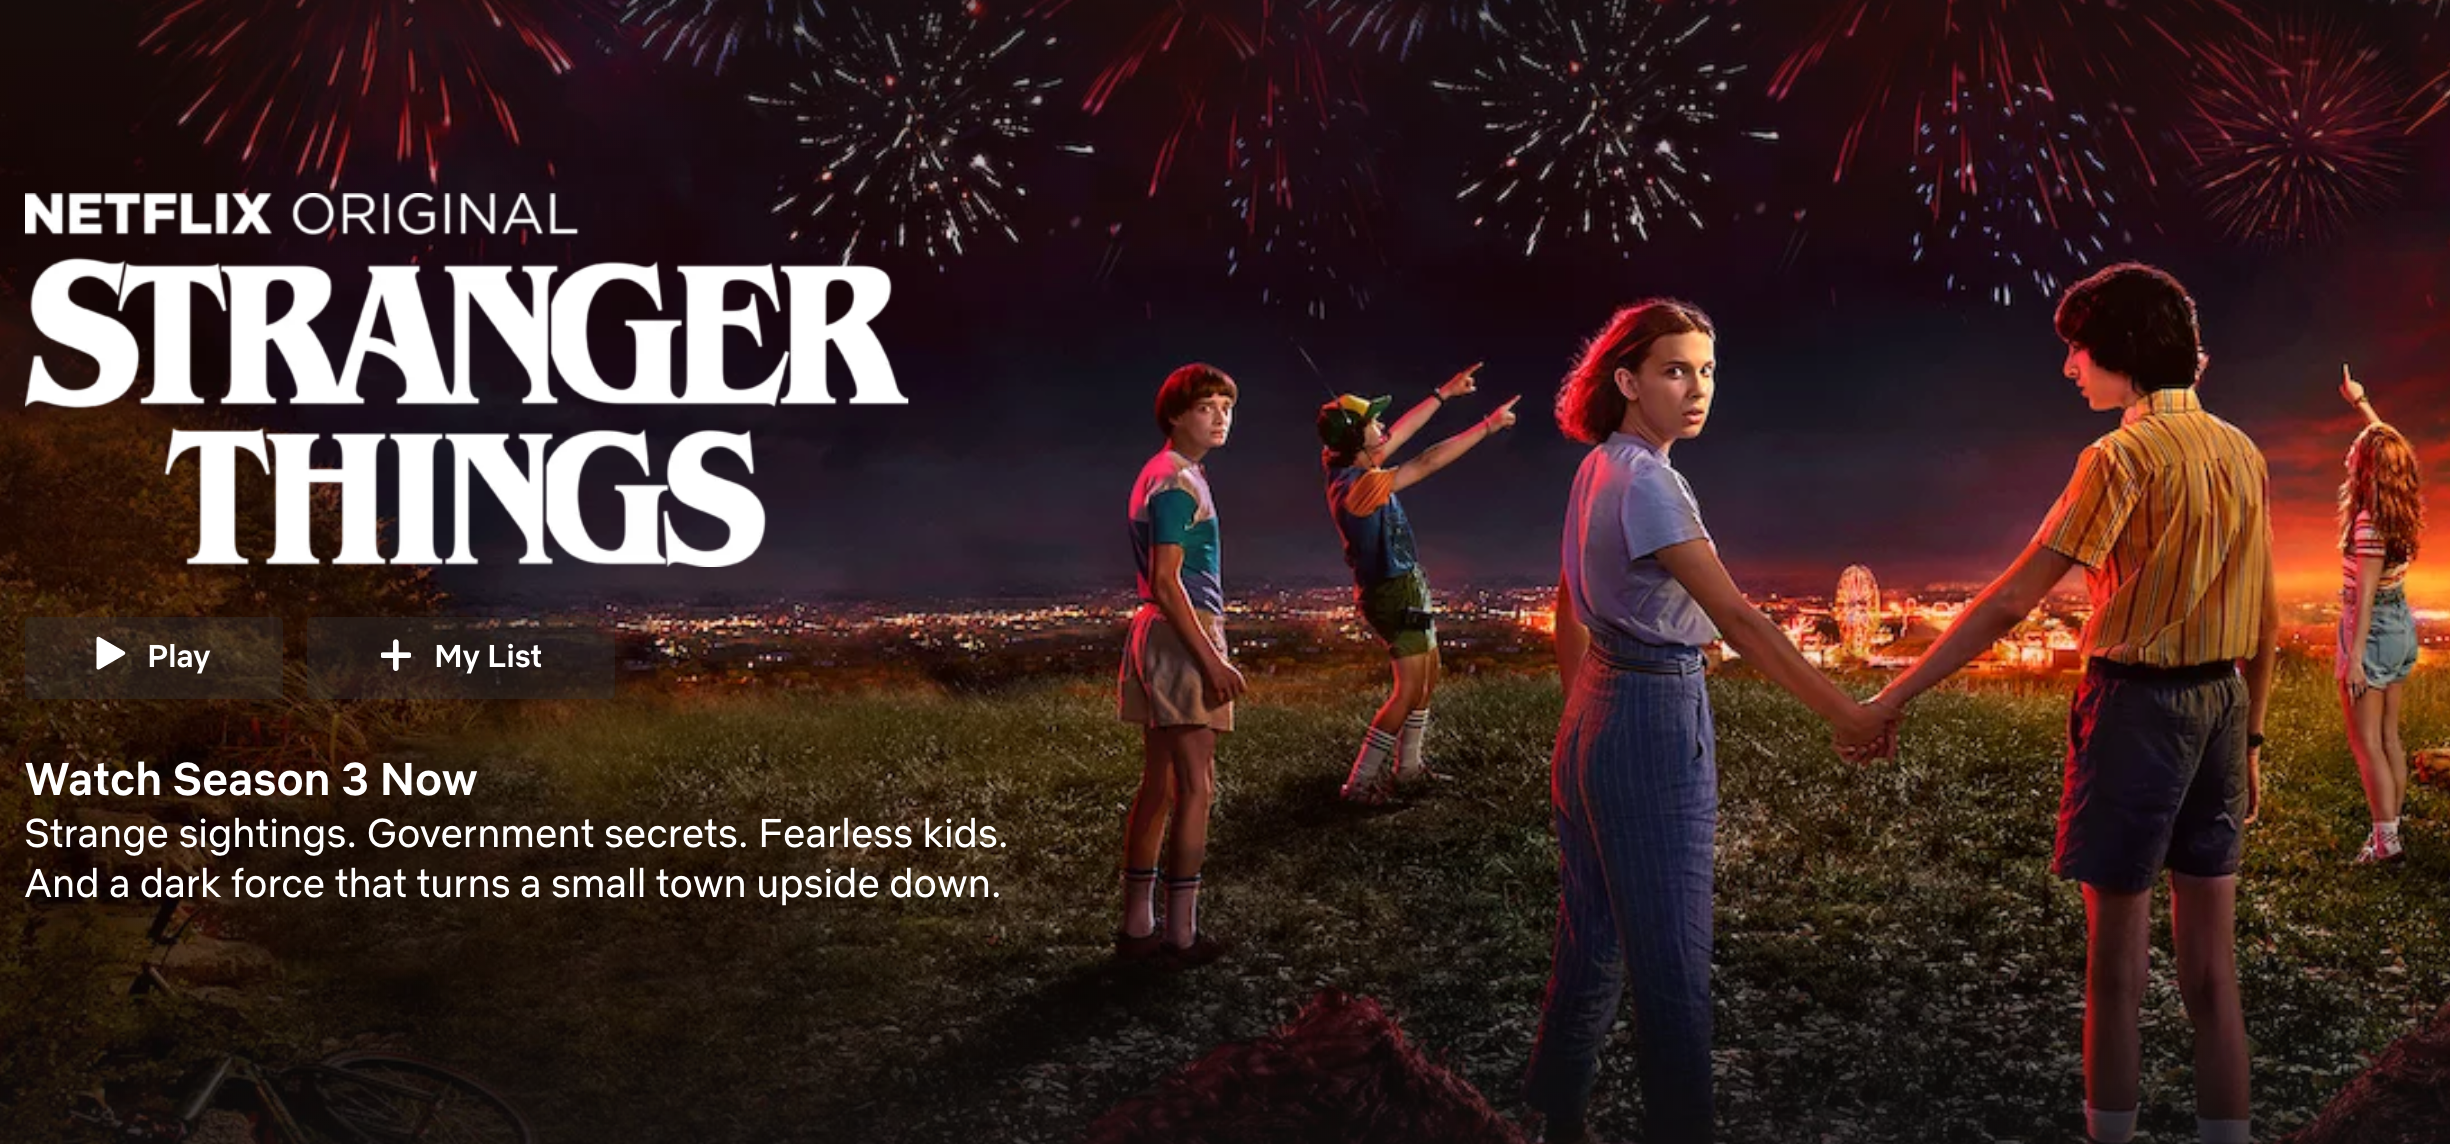 Stranger Things 3 is now available on Netflix | TechCrunch